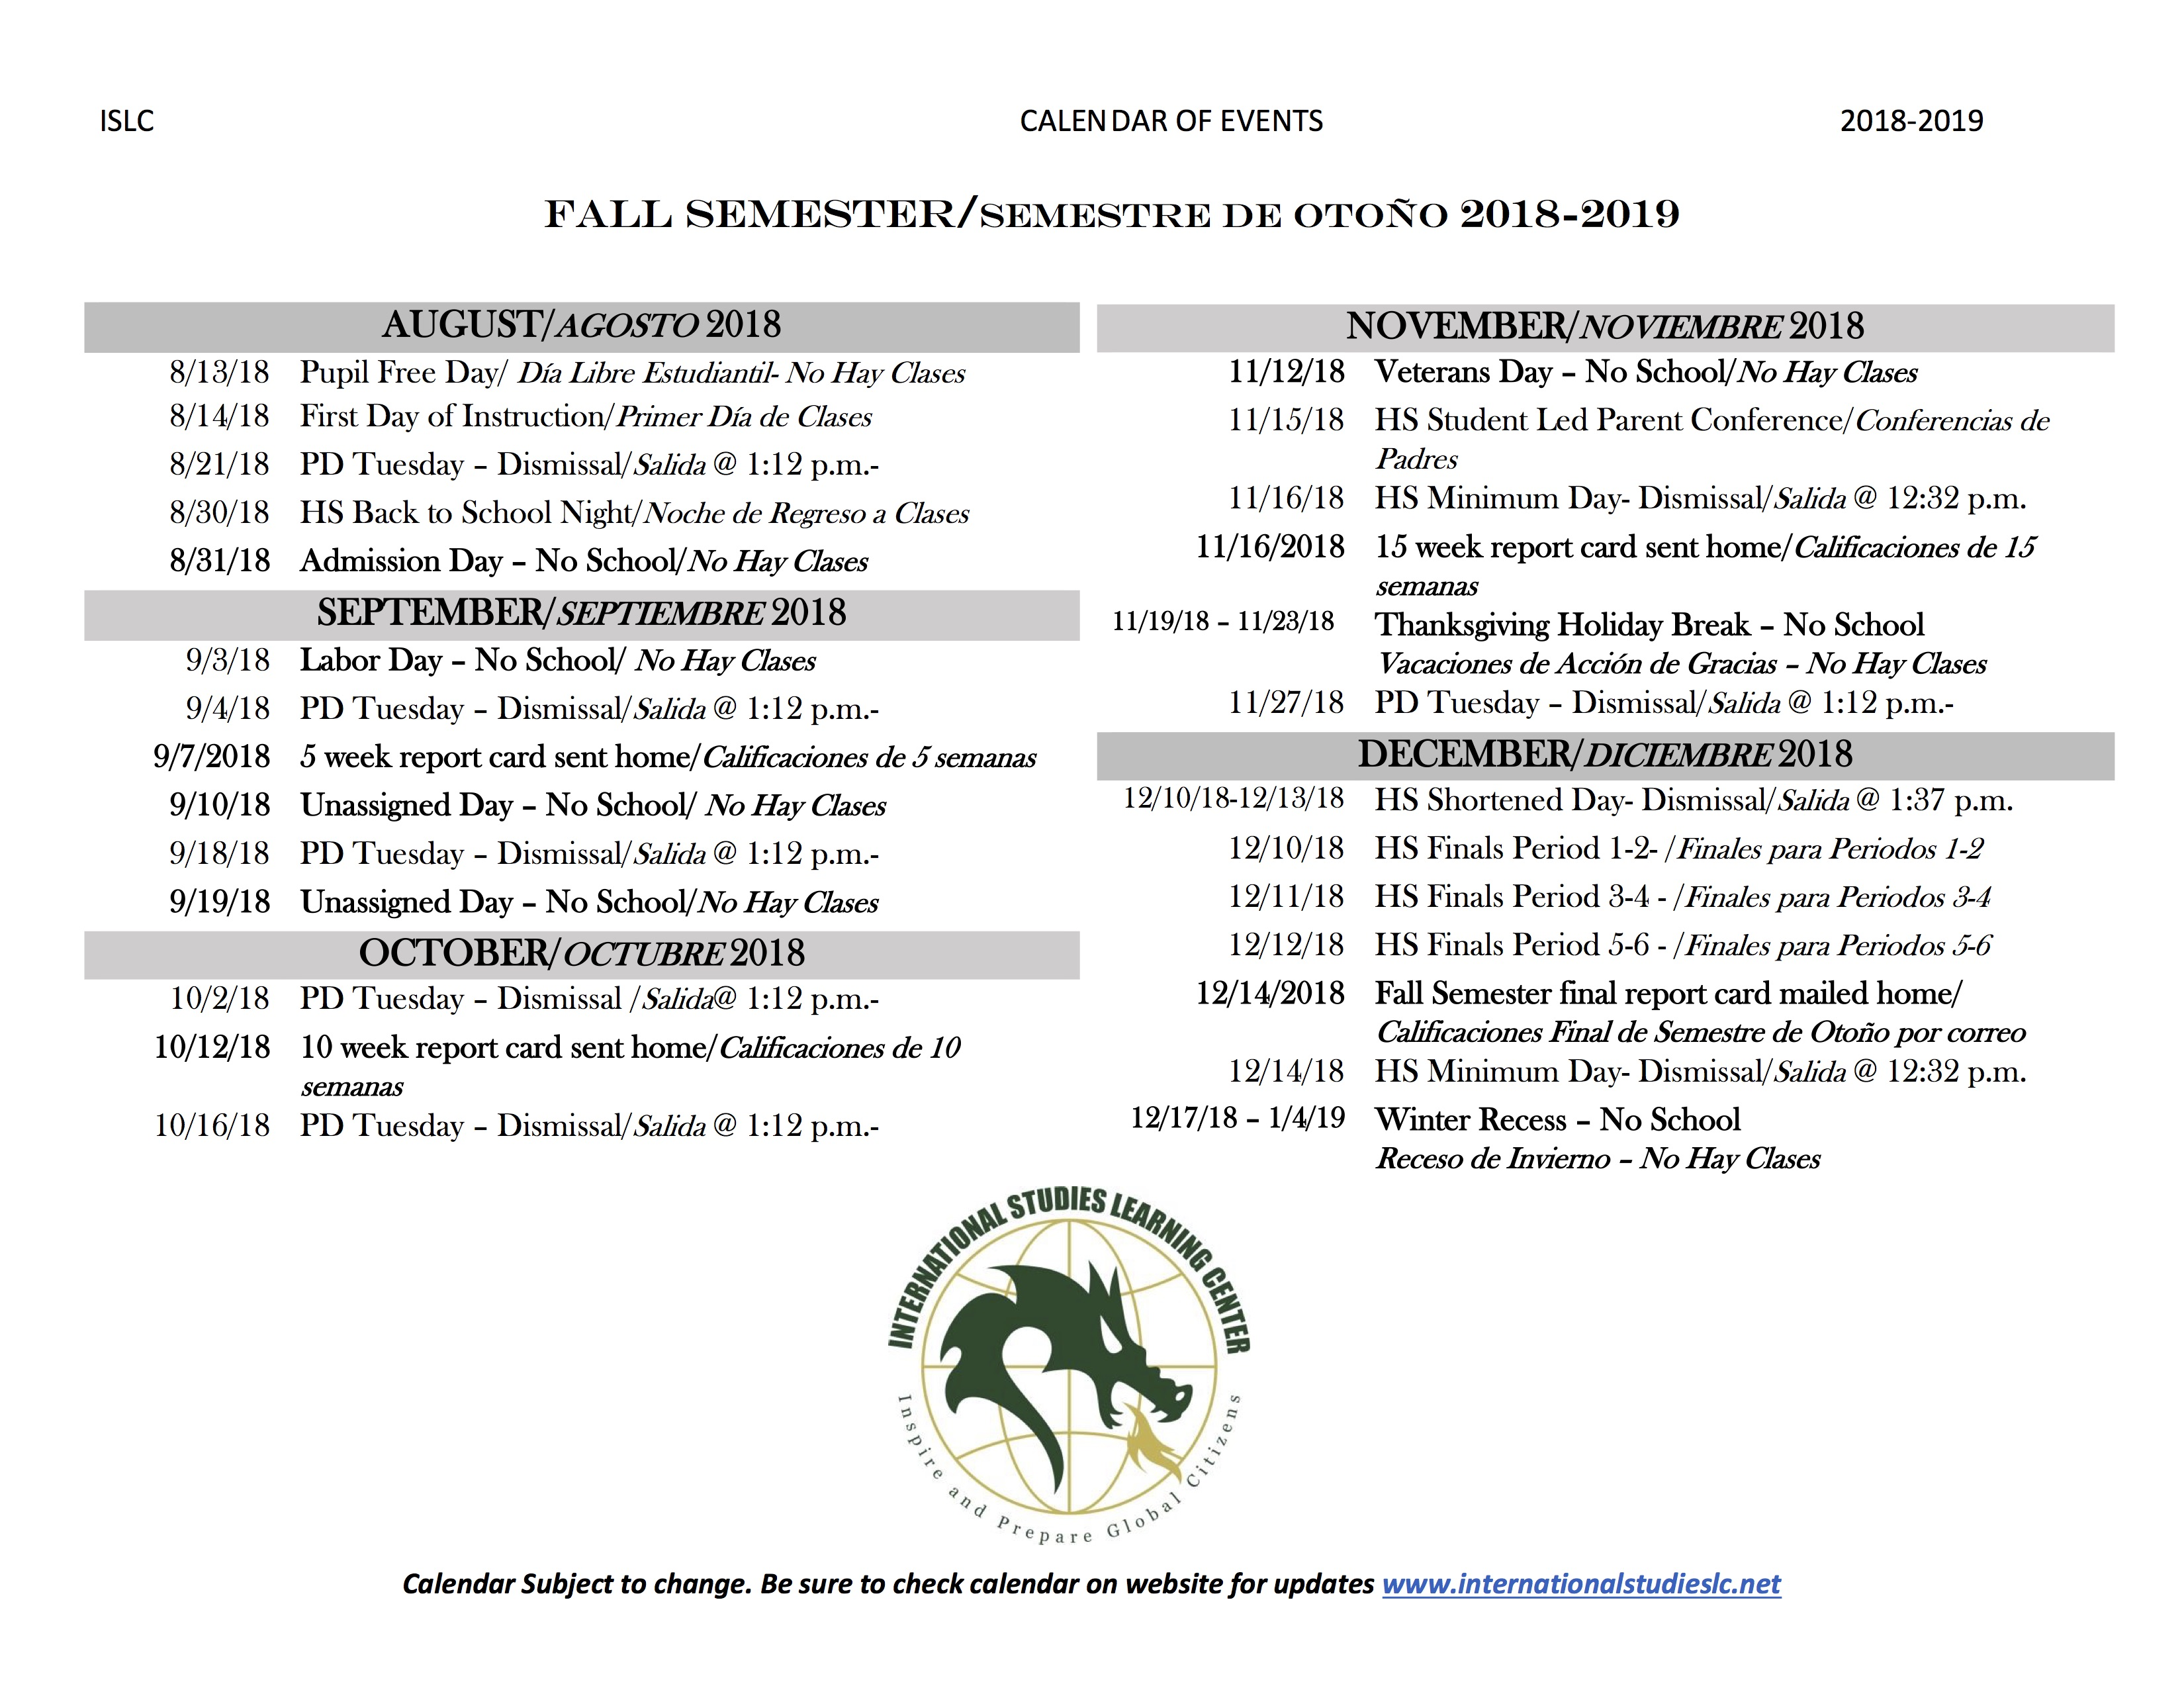 Calendar of Events-Fall 2018